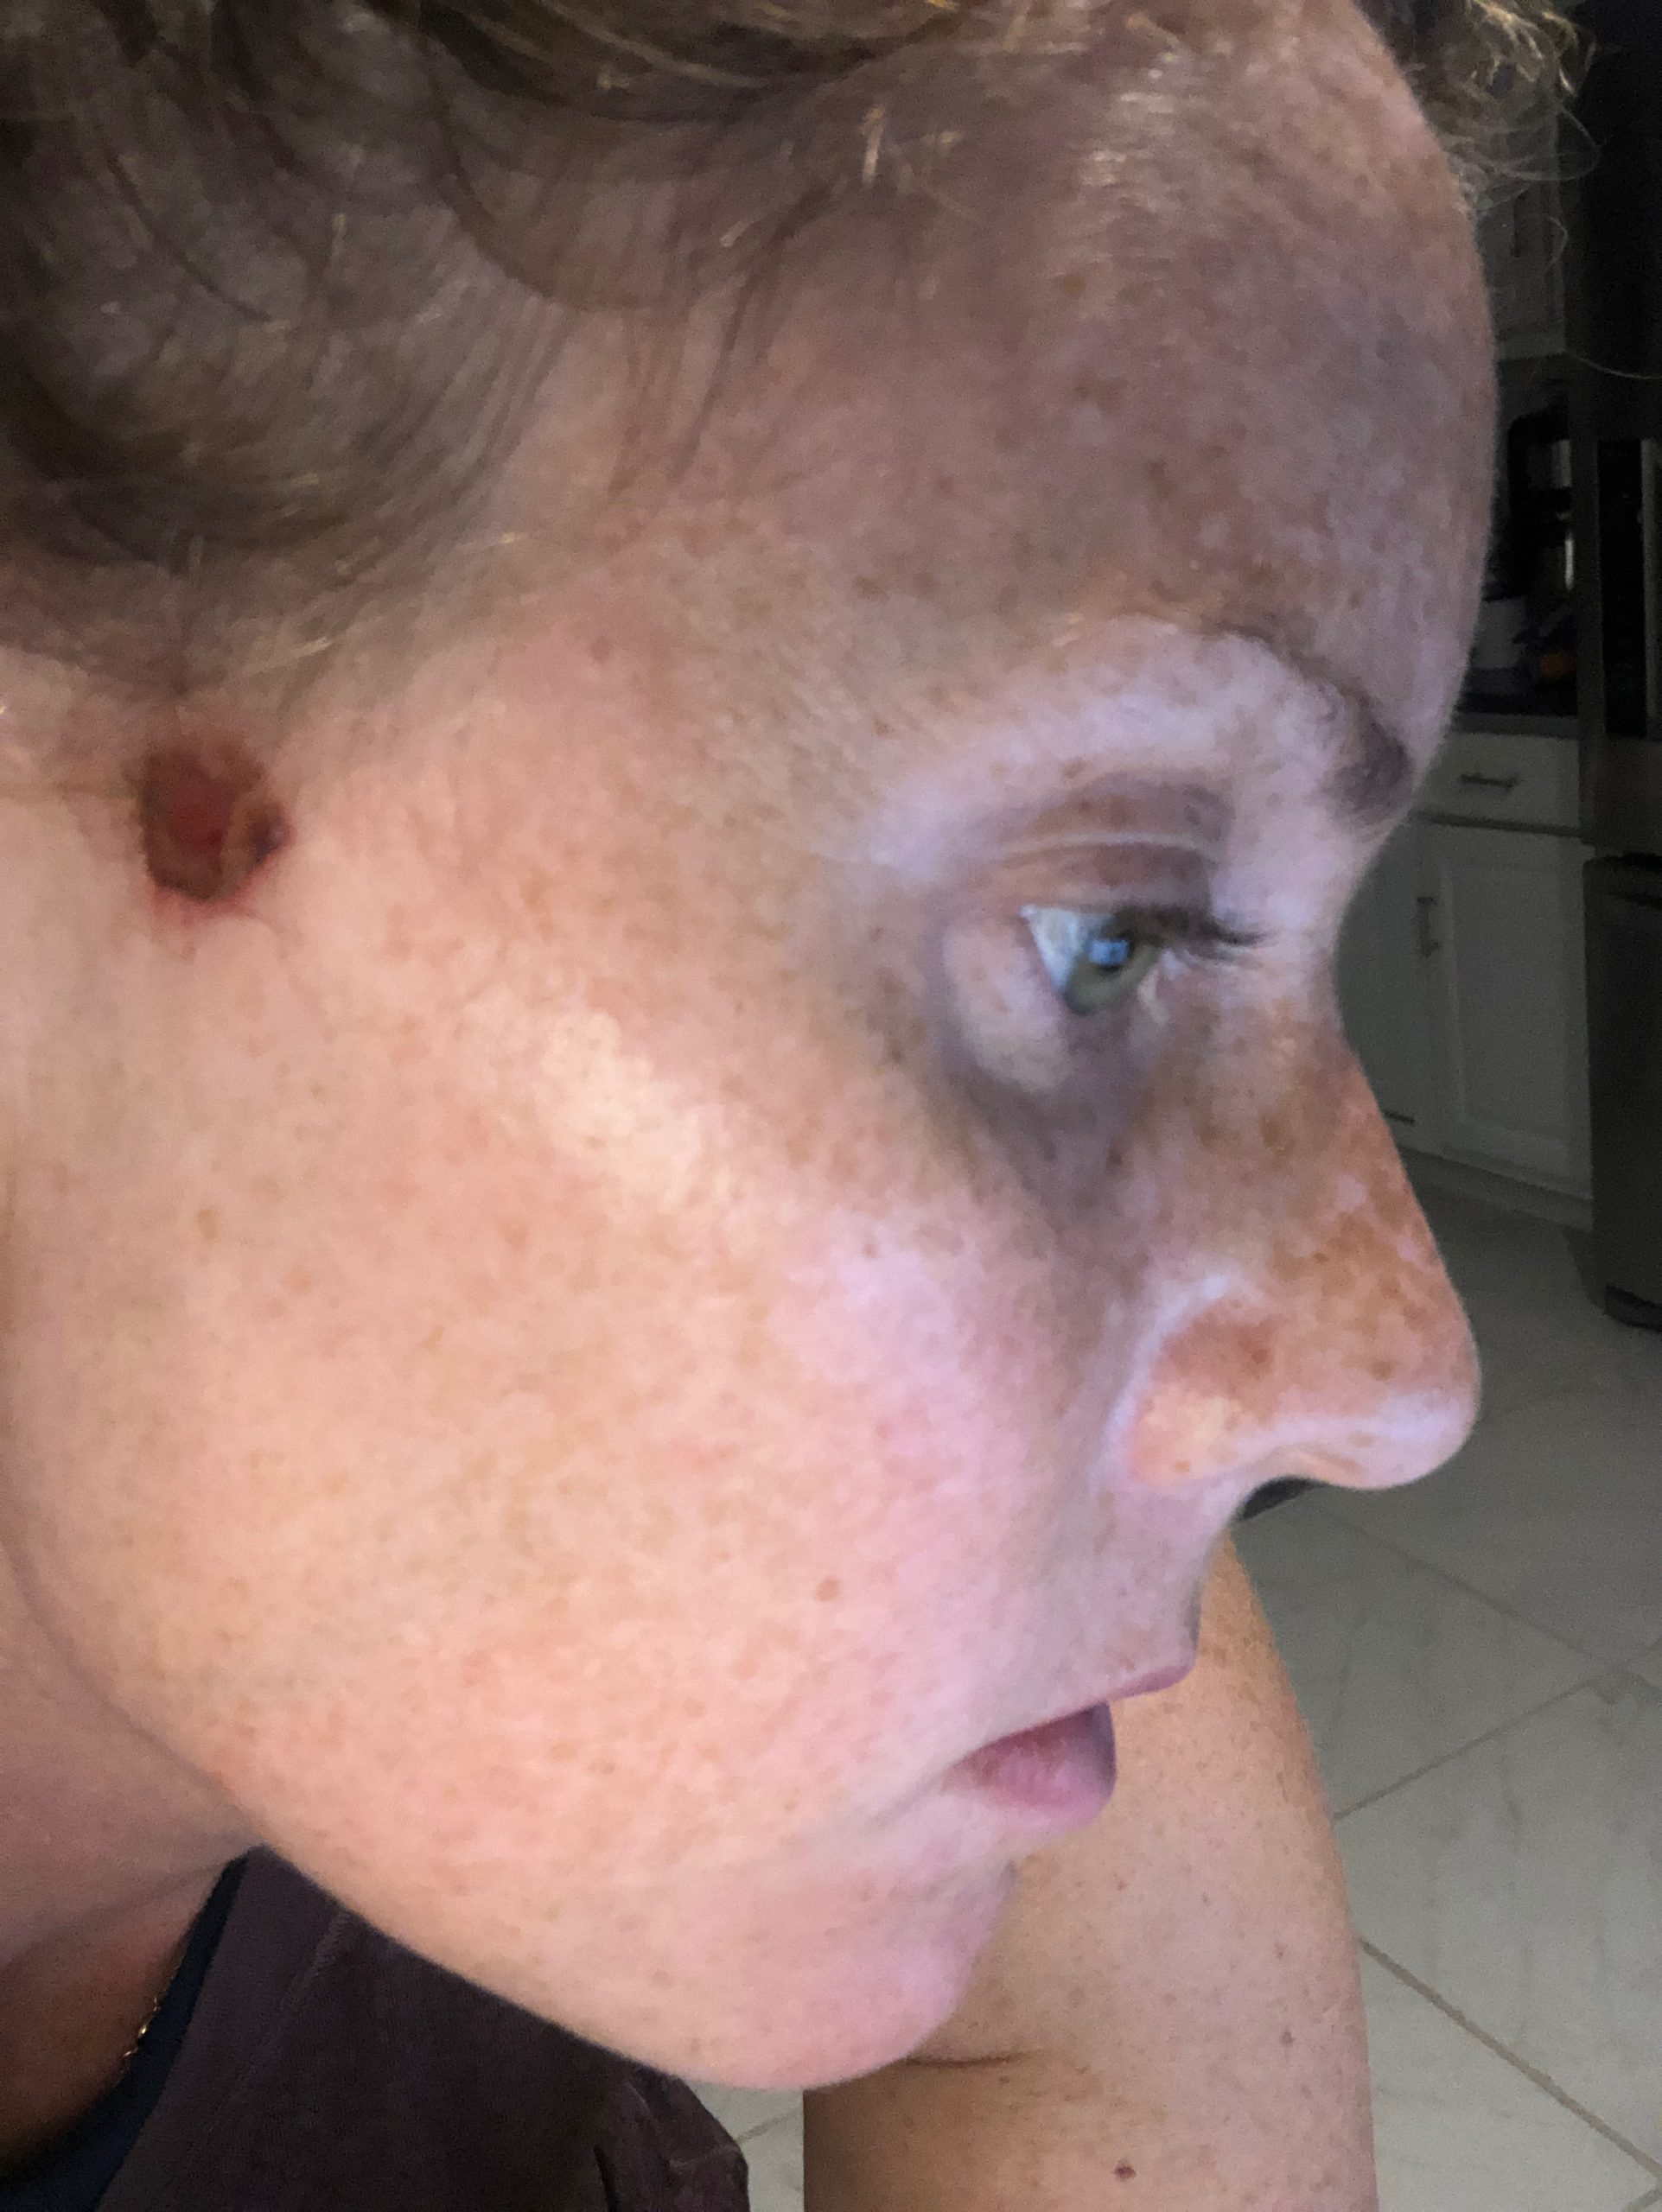 Woman with Basal Cell Carcinoma Skin Cancer on face